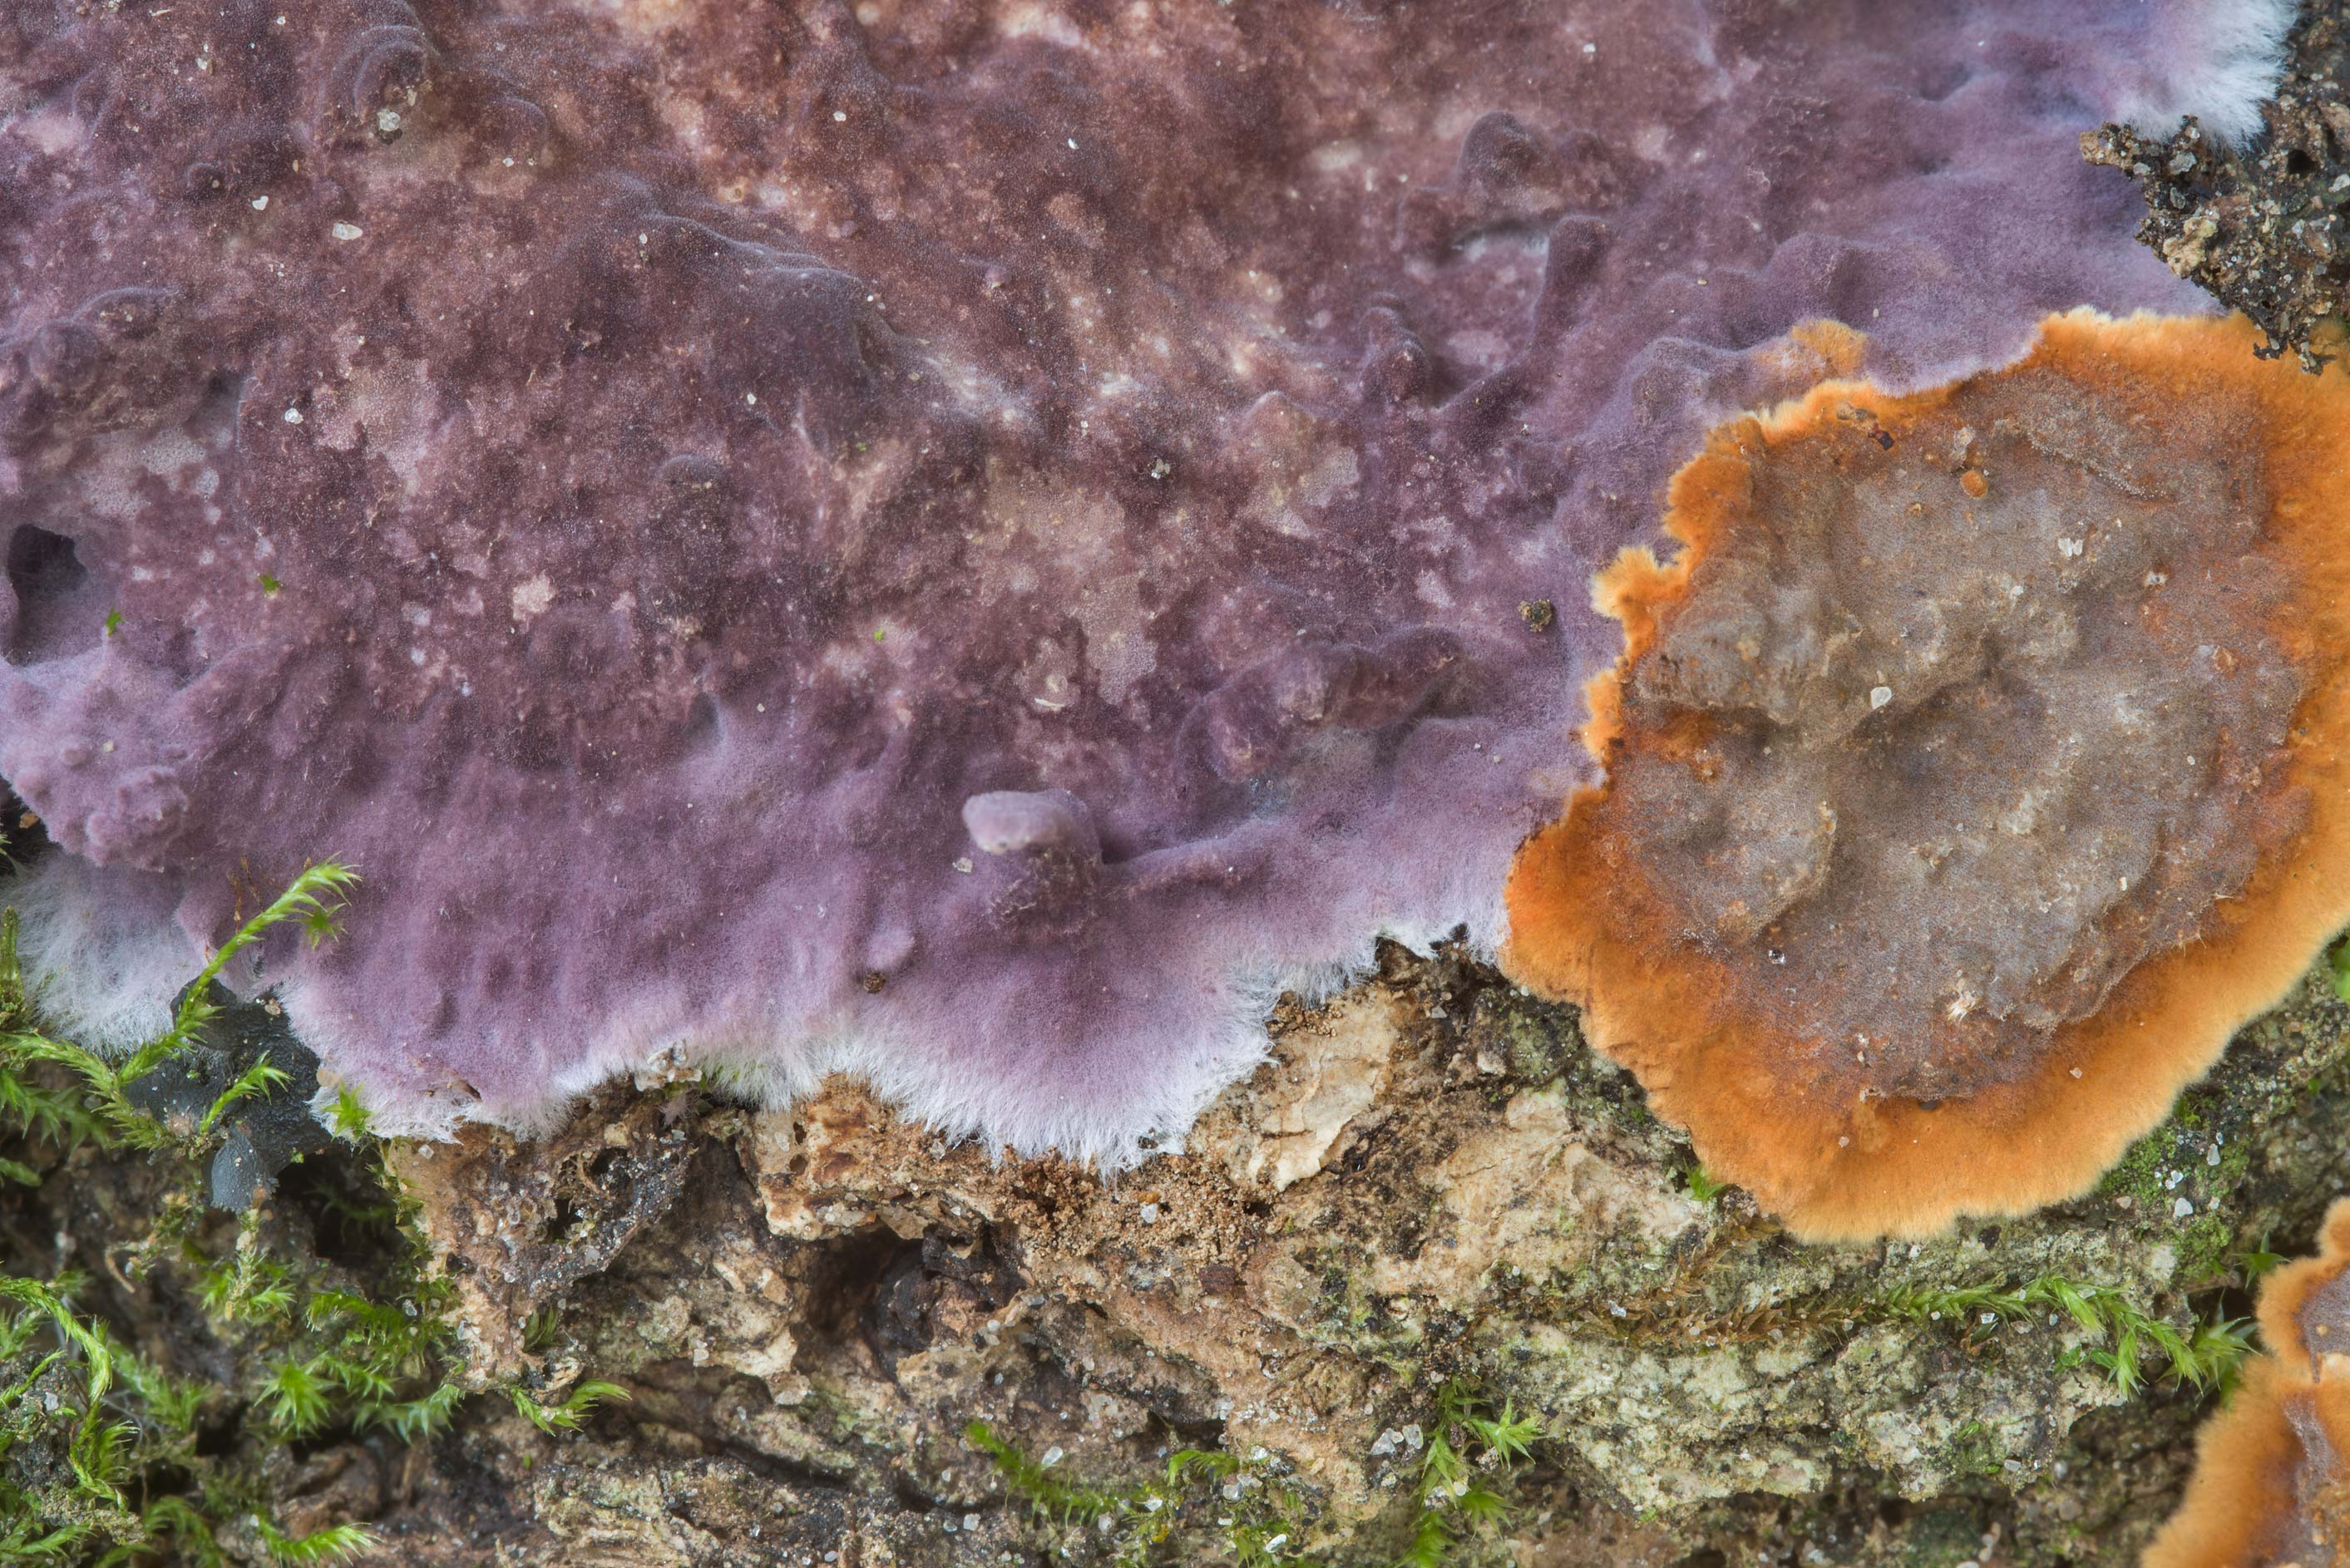 Hymenochaete (brown) and a purple crust fungus...in Hensel Park. College Station, Texas